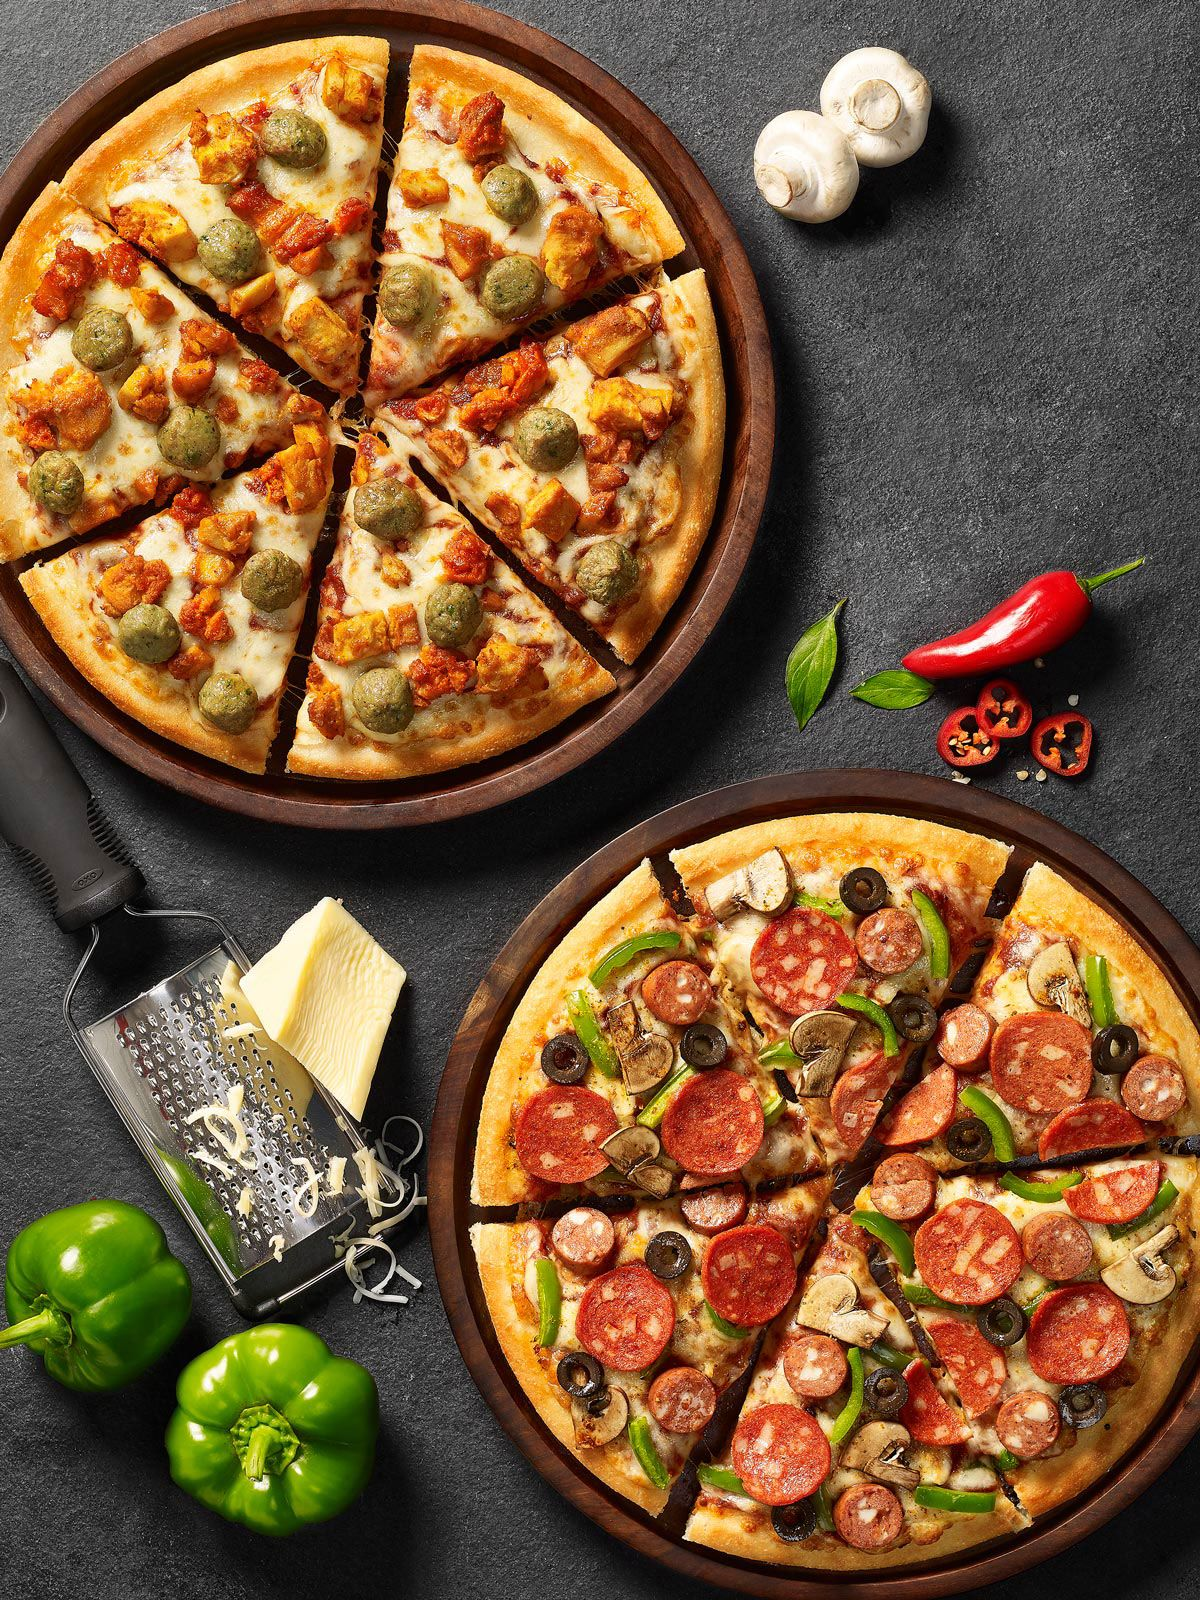 Pizza Arte Open Hours Pizza Hut New Menu On Behance Pizza In 2019 Food Photography